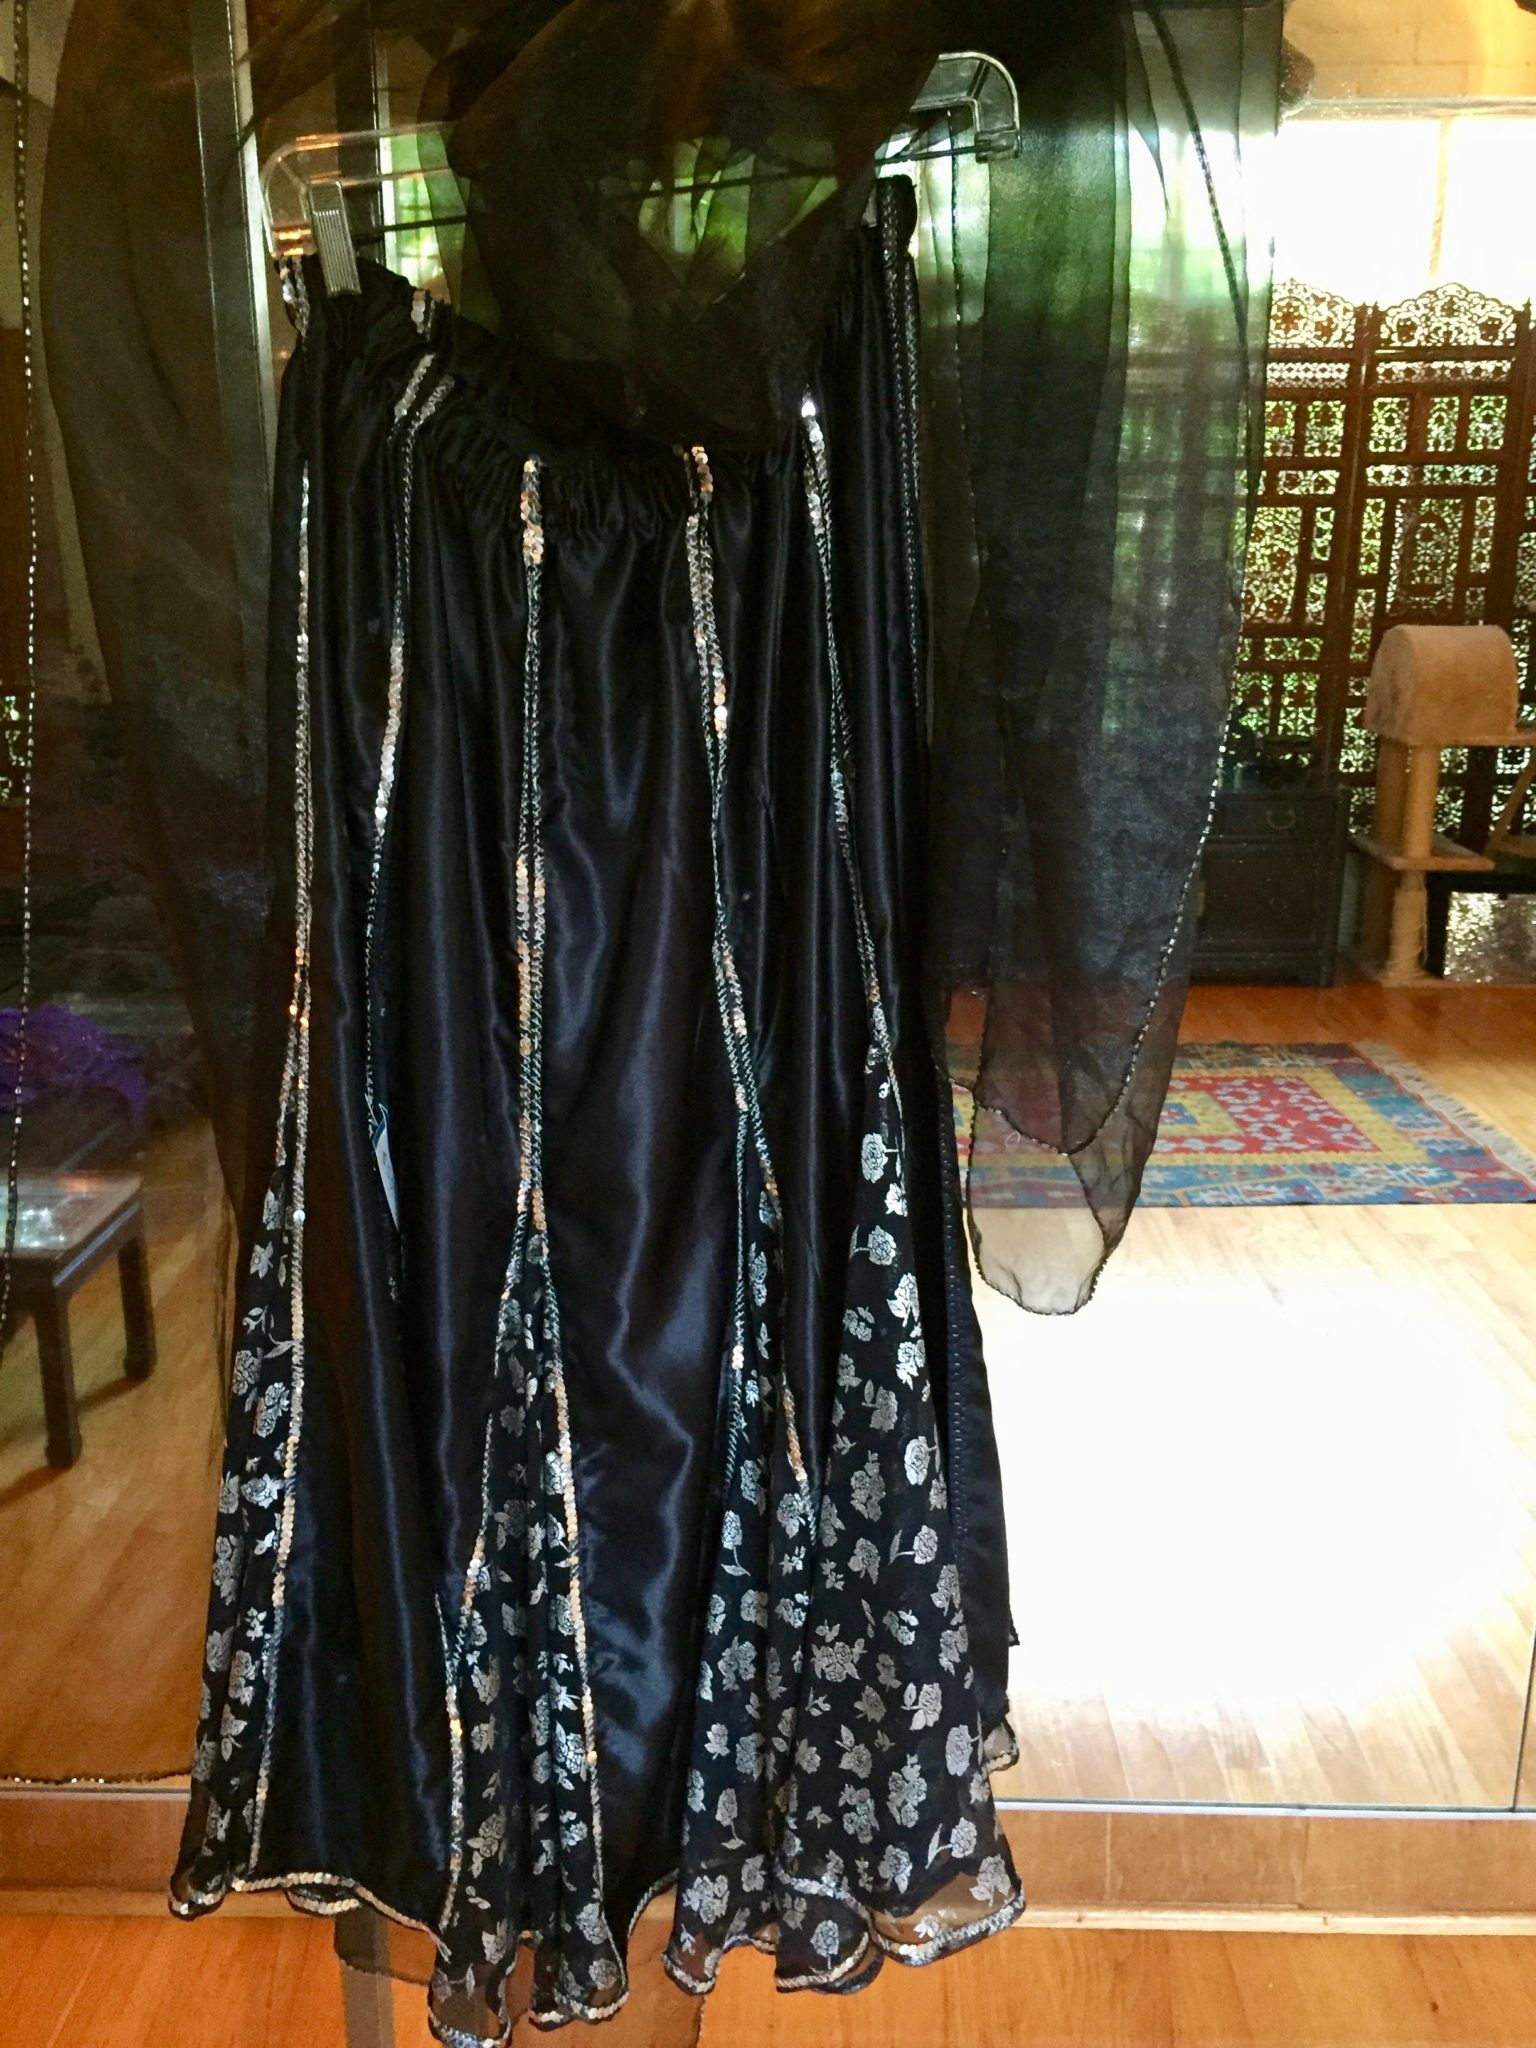 BlkSkirtVeil - SOLD! Black and Silver Belly Dance Skirt with black beaded veil